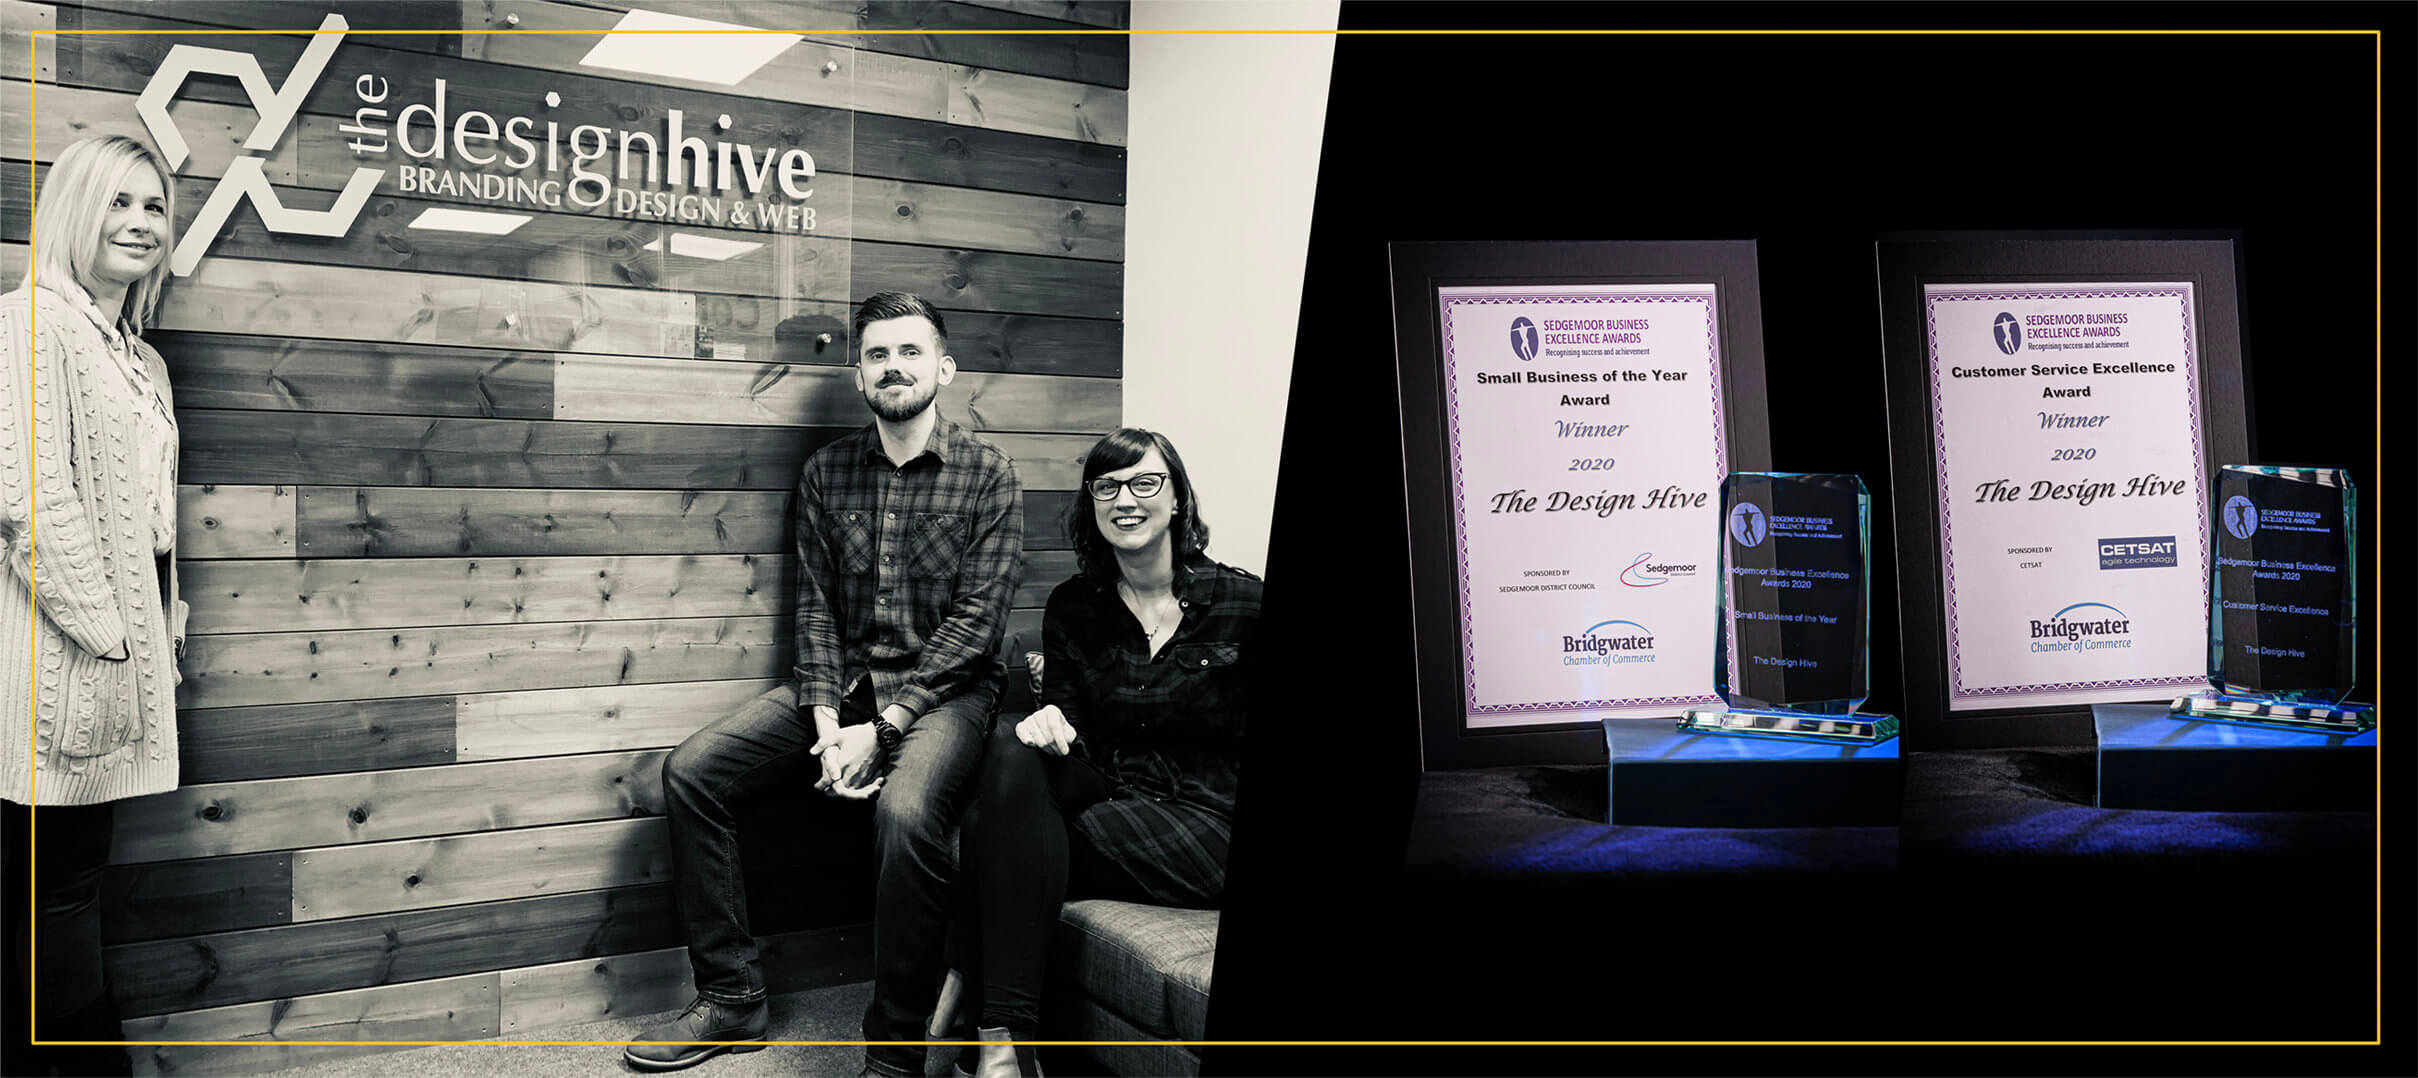 The Design Hive Awards